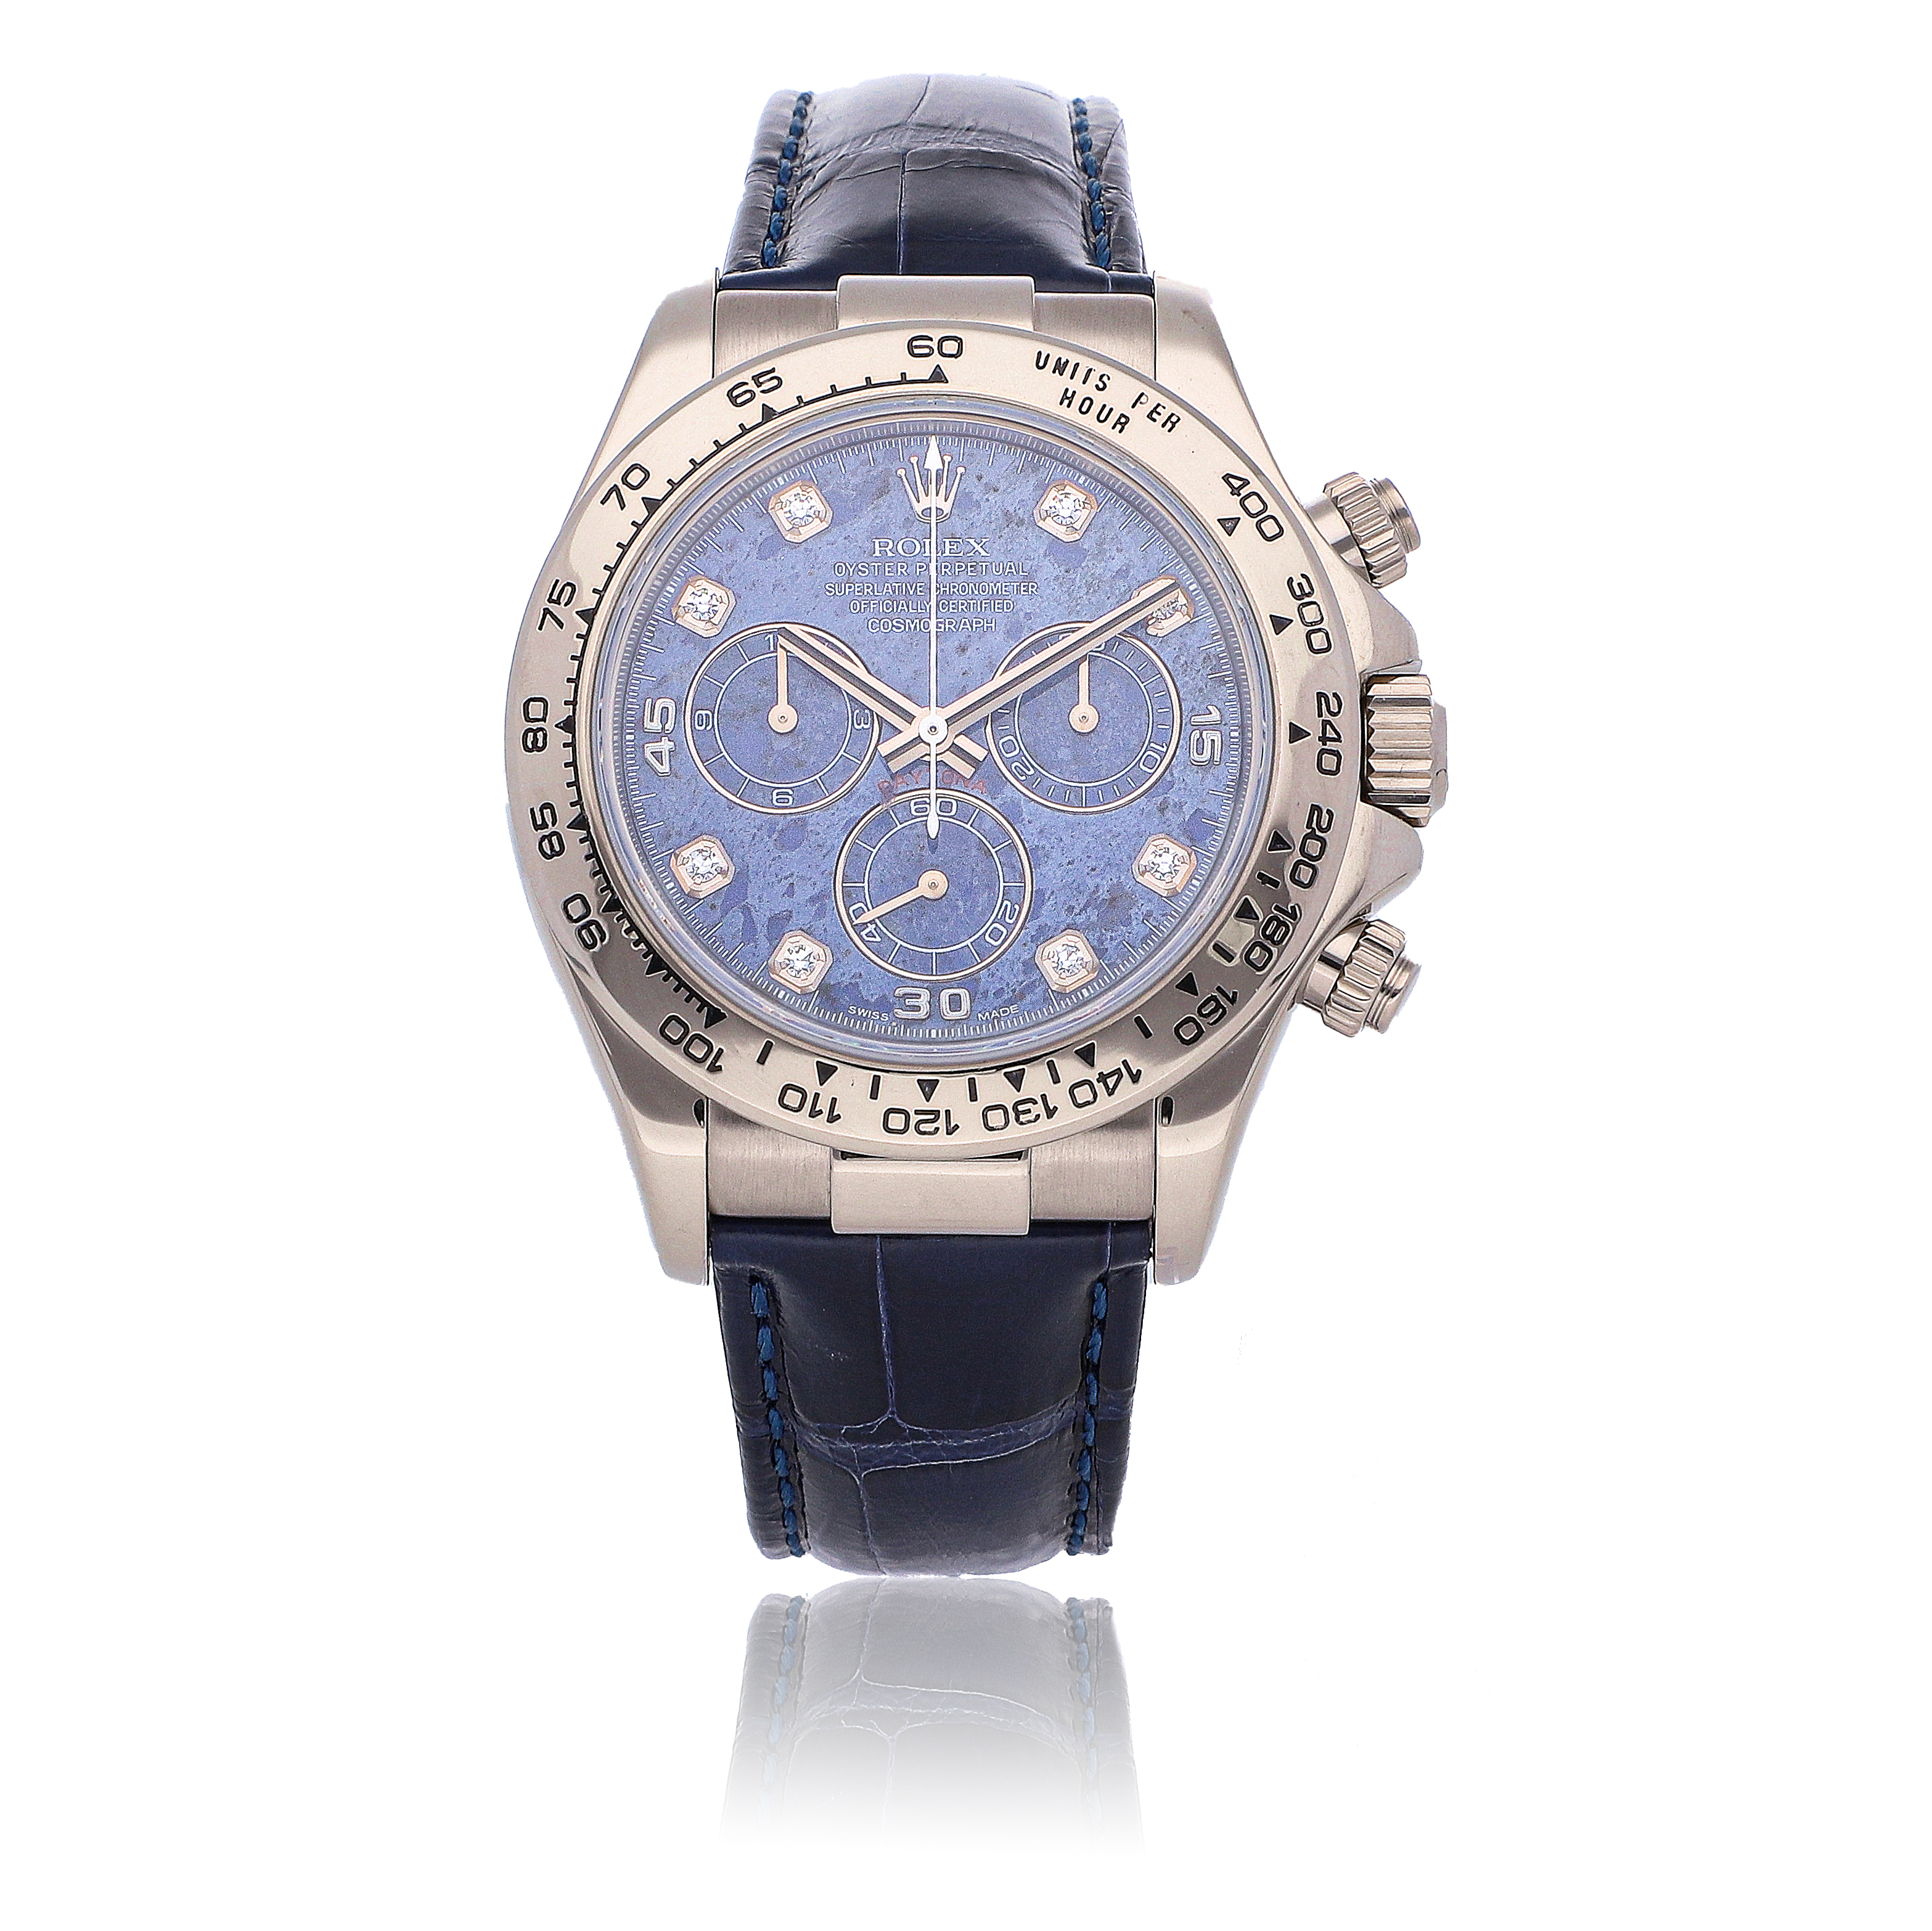 View full screen - View 1 of Lot 464. ROLEX   DAYTONA REF 116519, A WHITE GOLD AUTOMATIC CHRONOGRAPH WRISTWATCH WITH SODALITE AND DIAMOND-SET DIAL CIRCA 2004     .